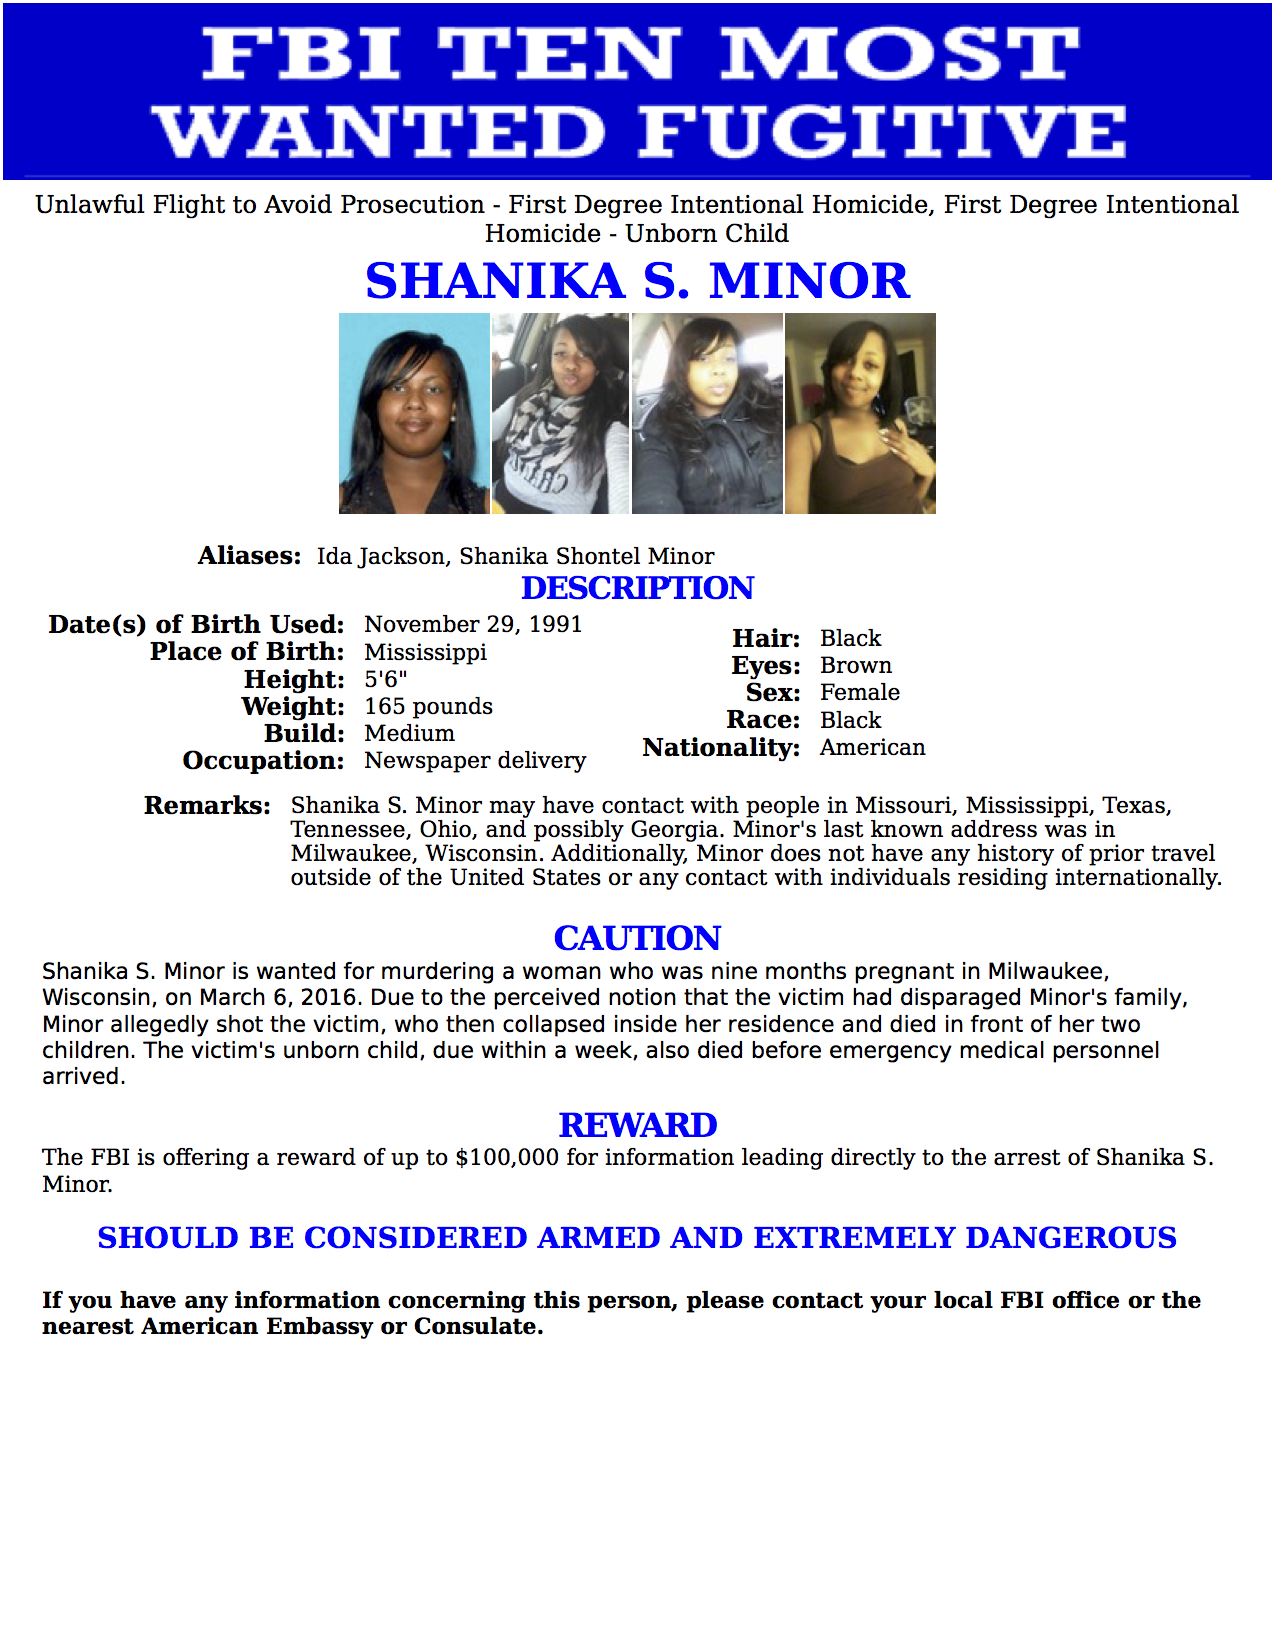 shanika minor, shanika minor fbi, shanika minor wanted poster